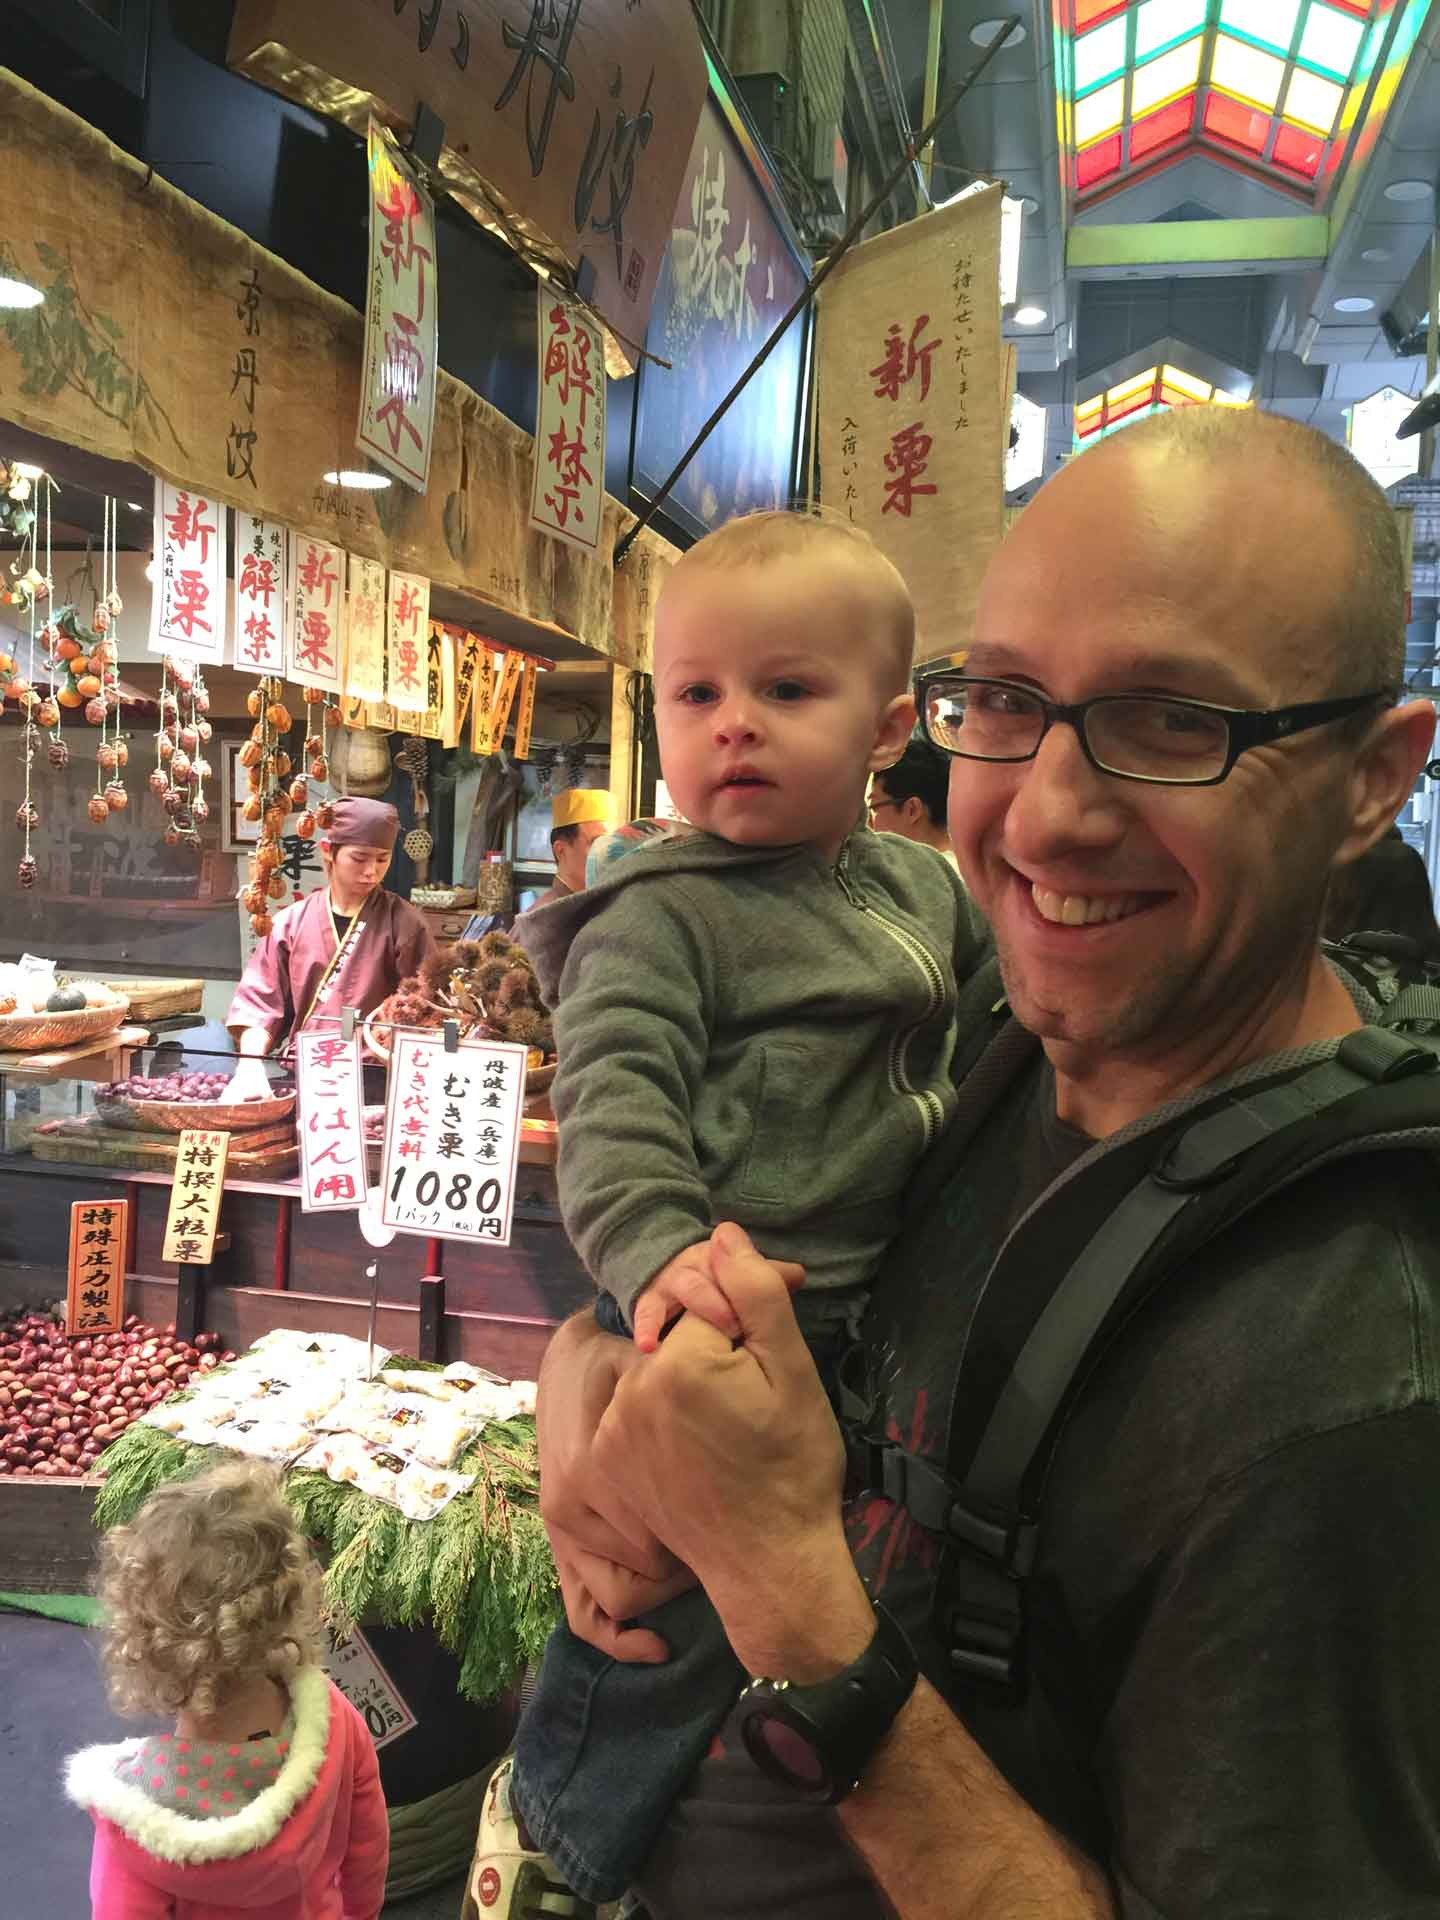 Nishiki Market in Kyoto Japan with a baby